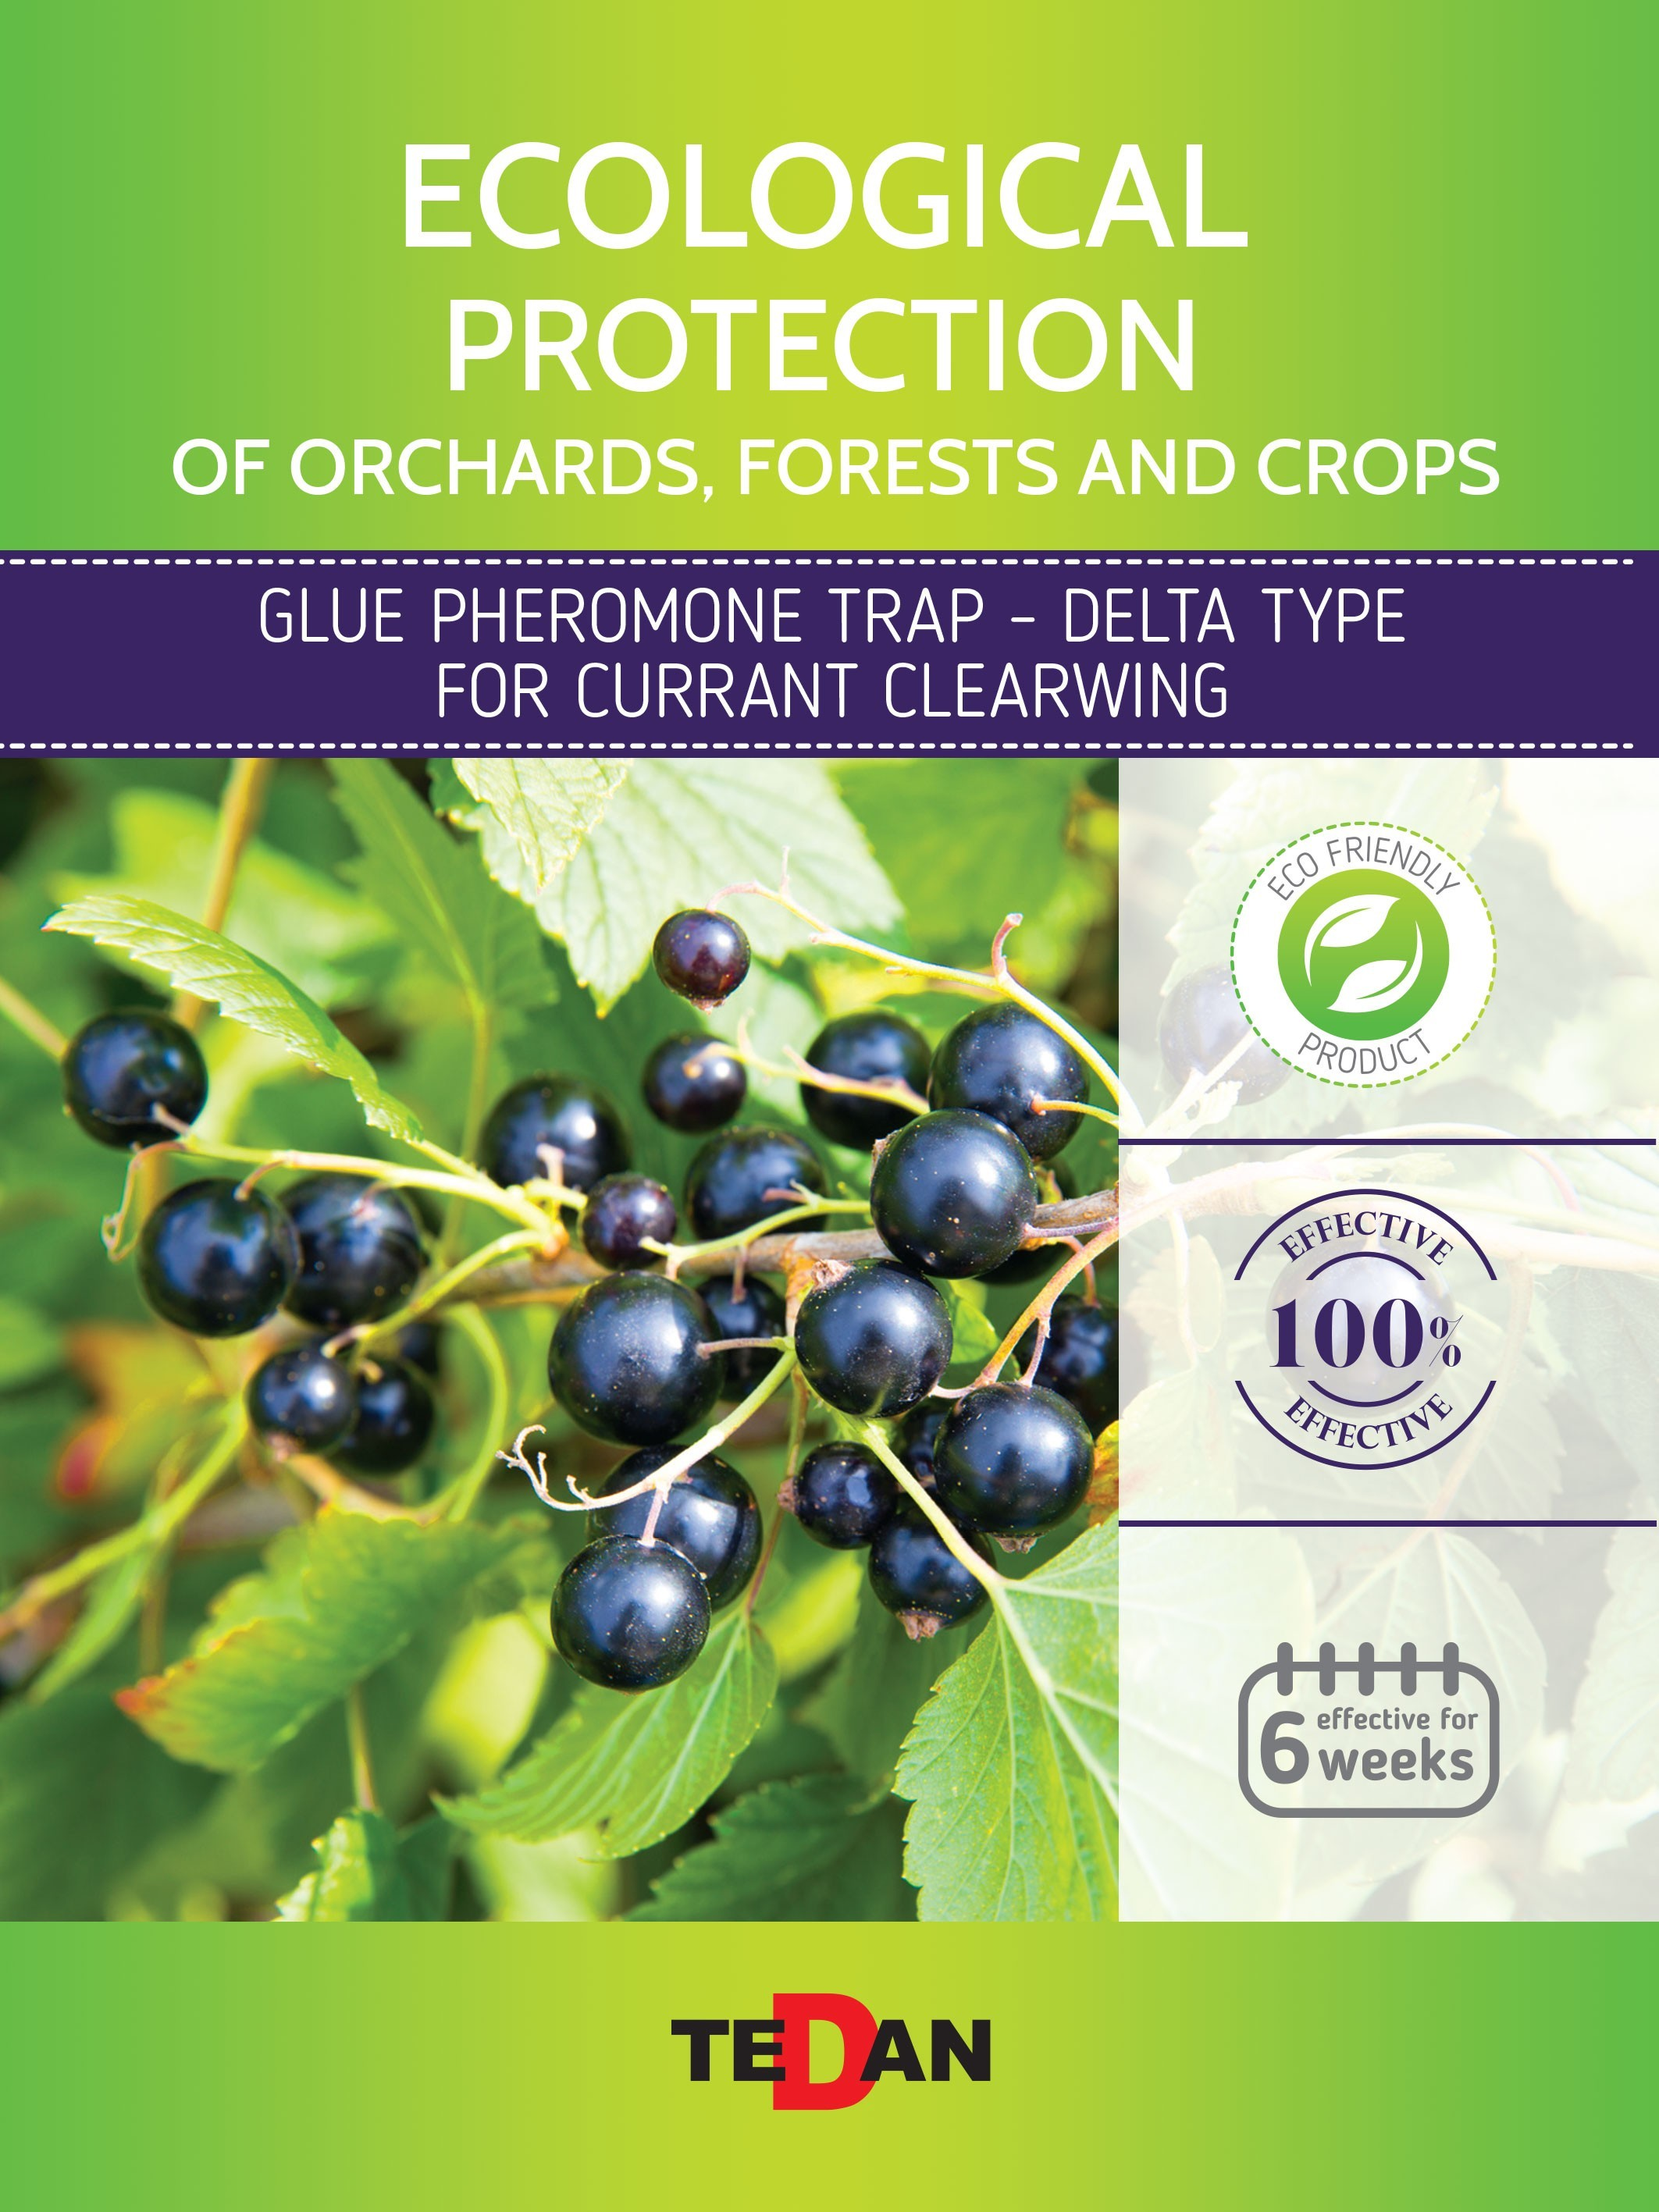 Glue pheromone trap - delta type for  currant clearwing (Synanthedon tipuliformis)